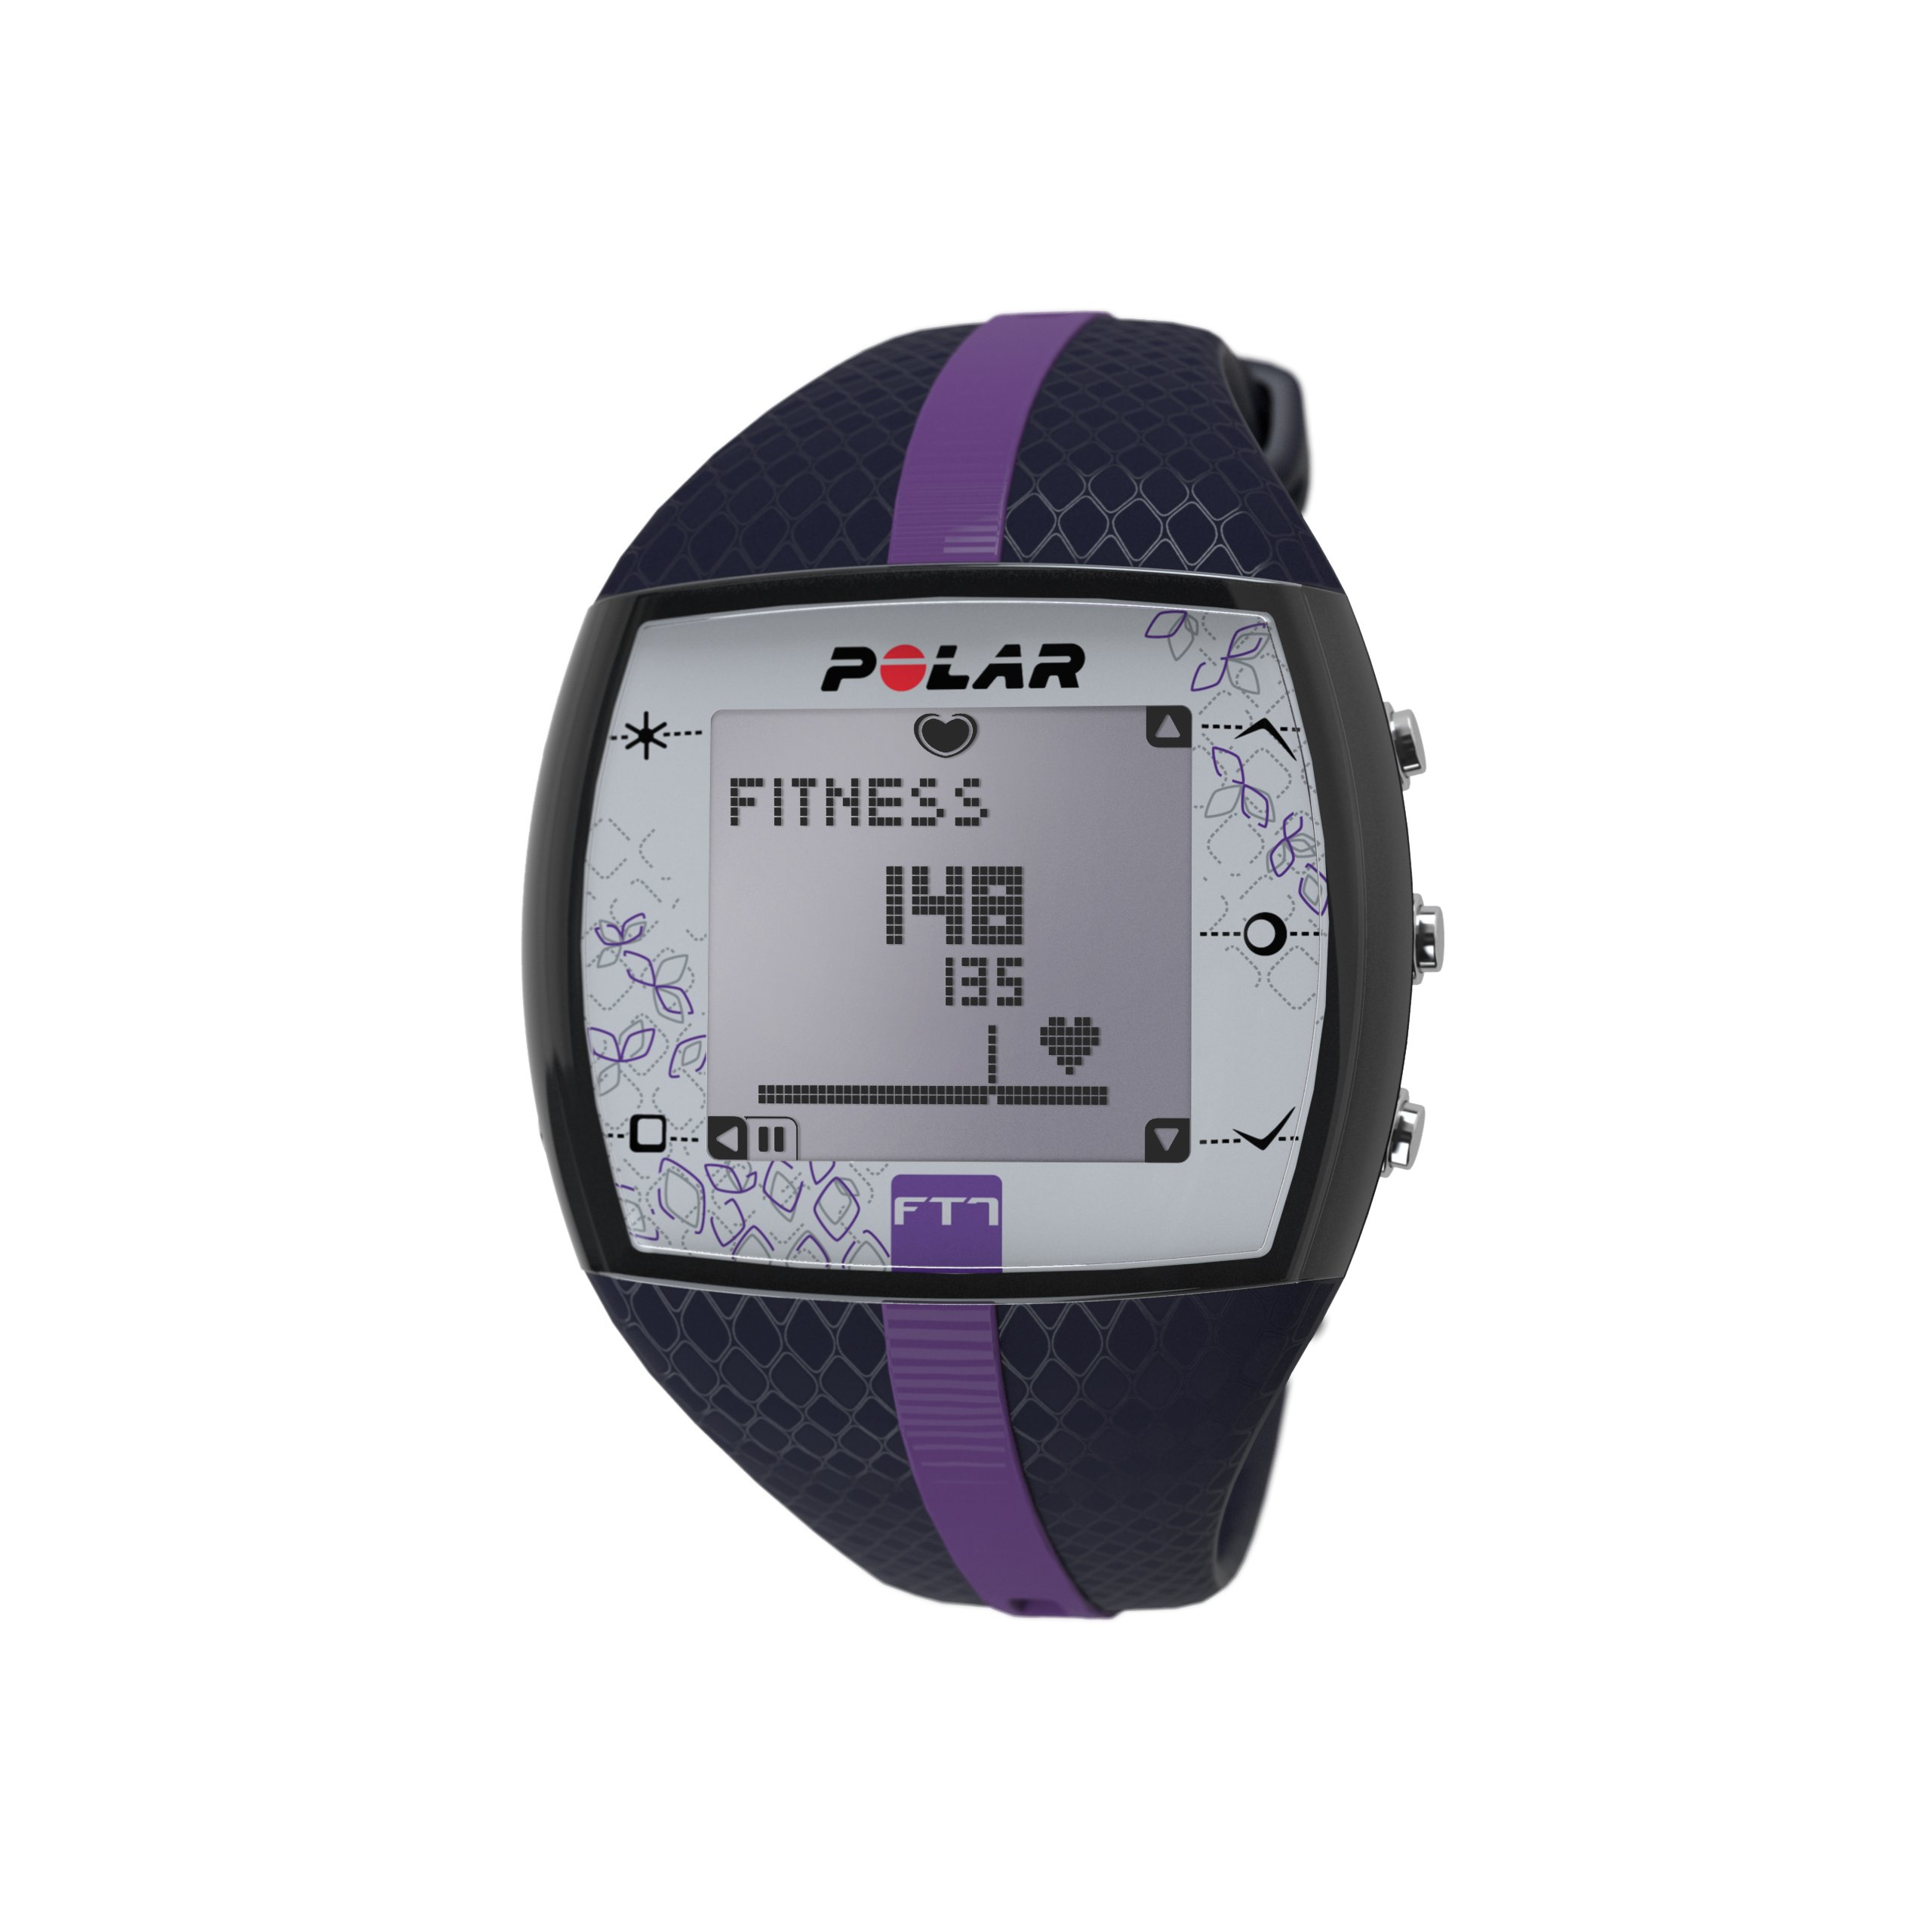 Polar FT7 Heart Rate Monitor Workout Watch, Blue/Lilac by POLAR (Image #3)